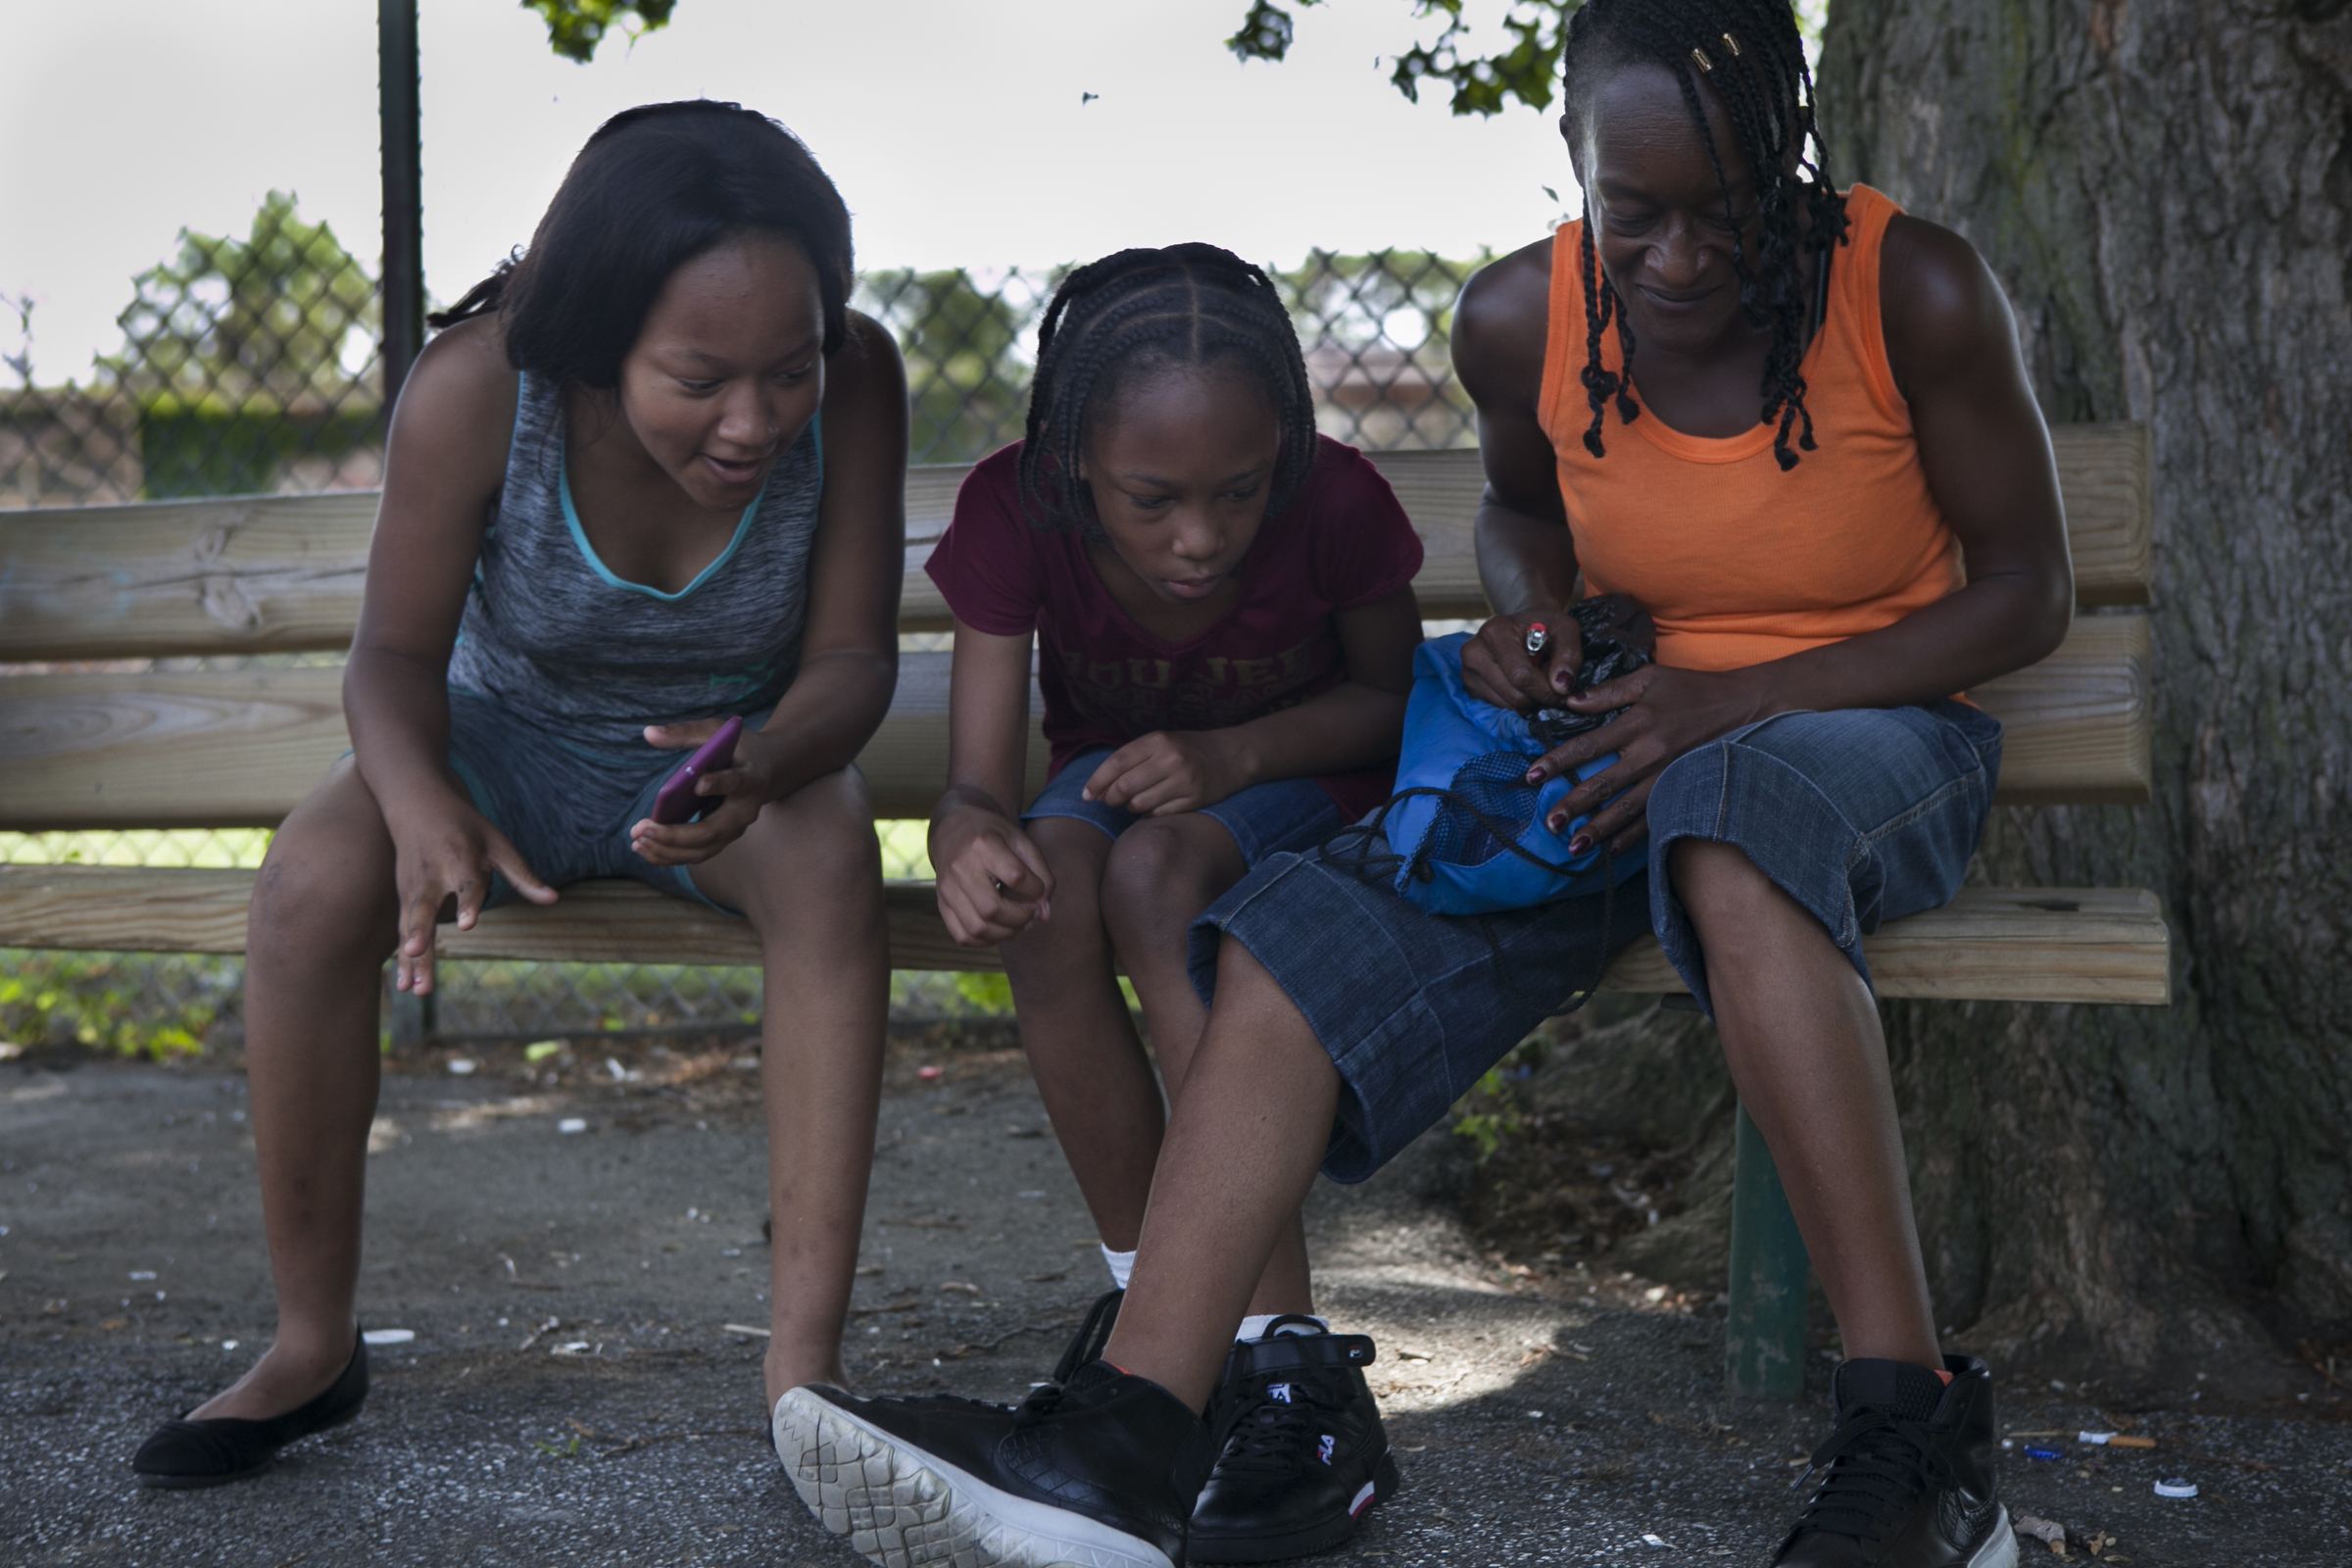 Sisters Savannaha Marion, 15, Cionne Richardson, 13, and their mother Michelle Richardson, all of Strawberry Mansion, look at a caterpillar on the blacktop at Dendy Playground on the morning of Friday, June 29, 2018. MAGGIE LOESCH